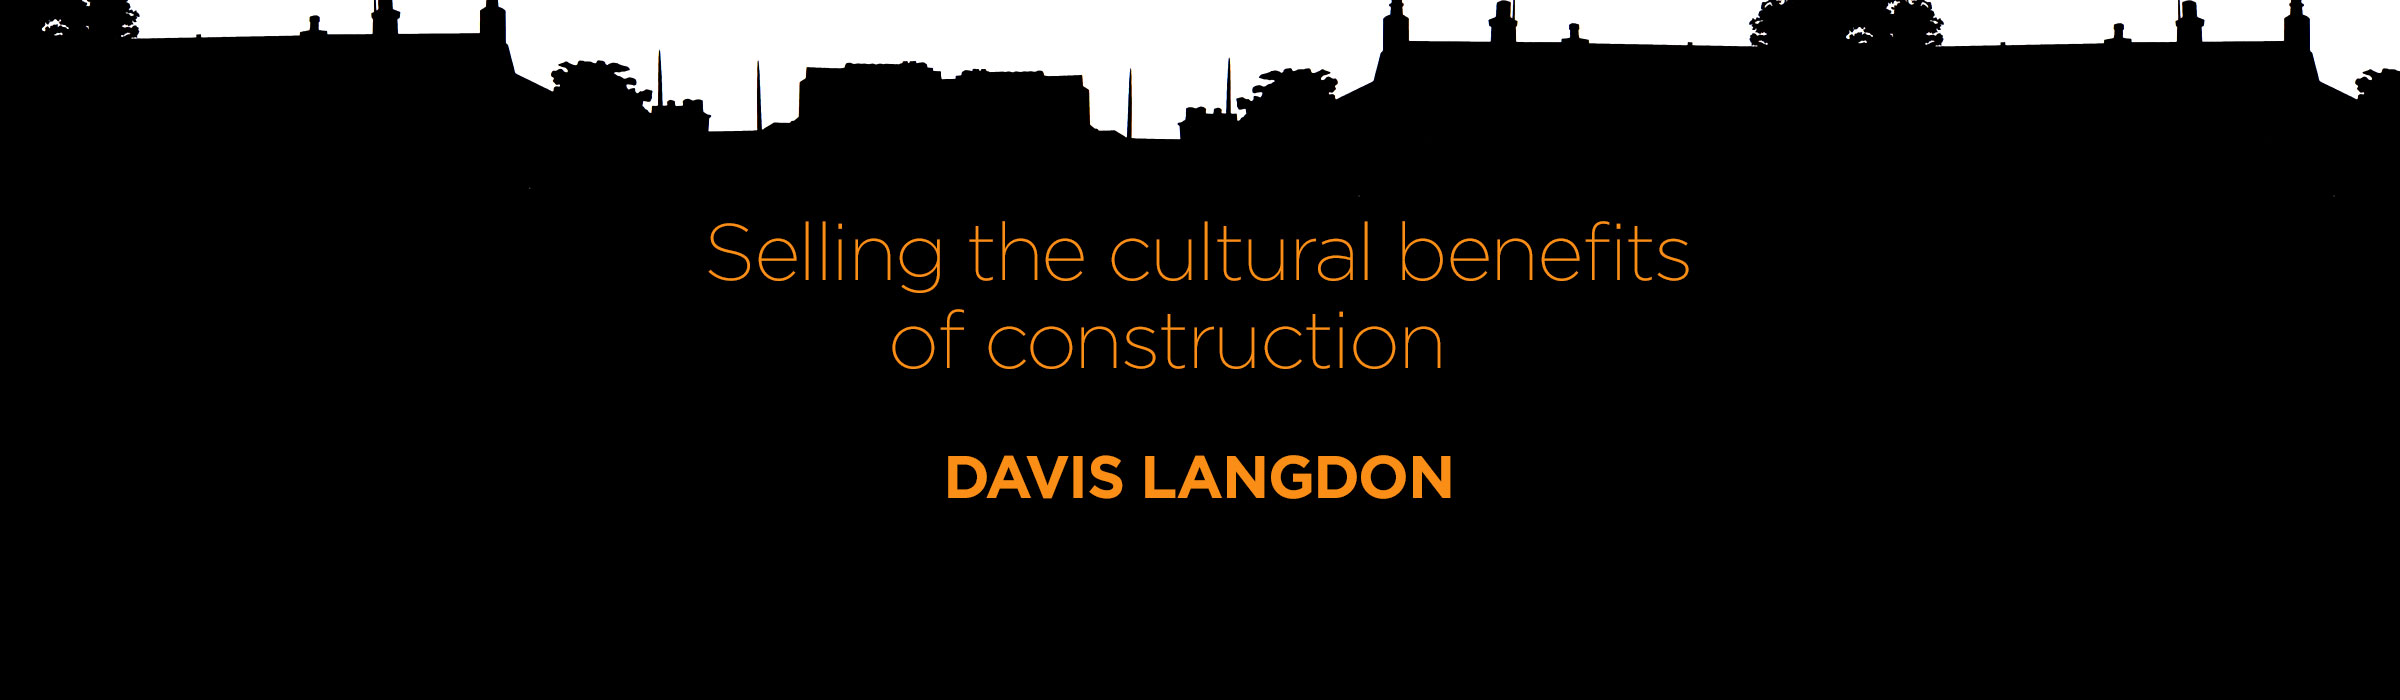 Davis Langdon – Selling the cultural benefits of London